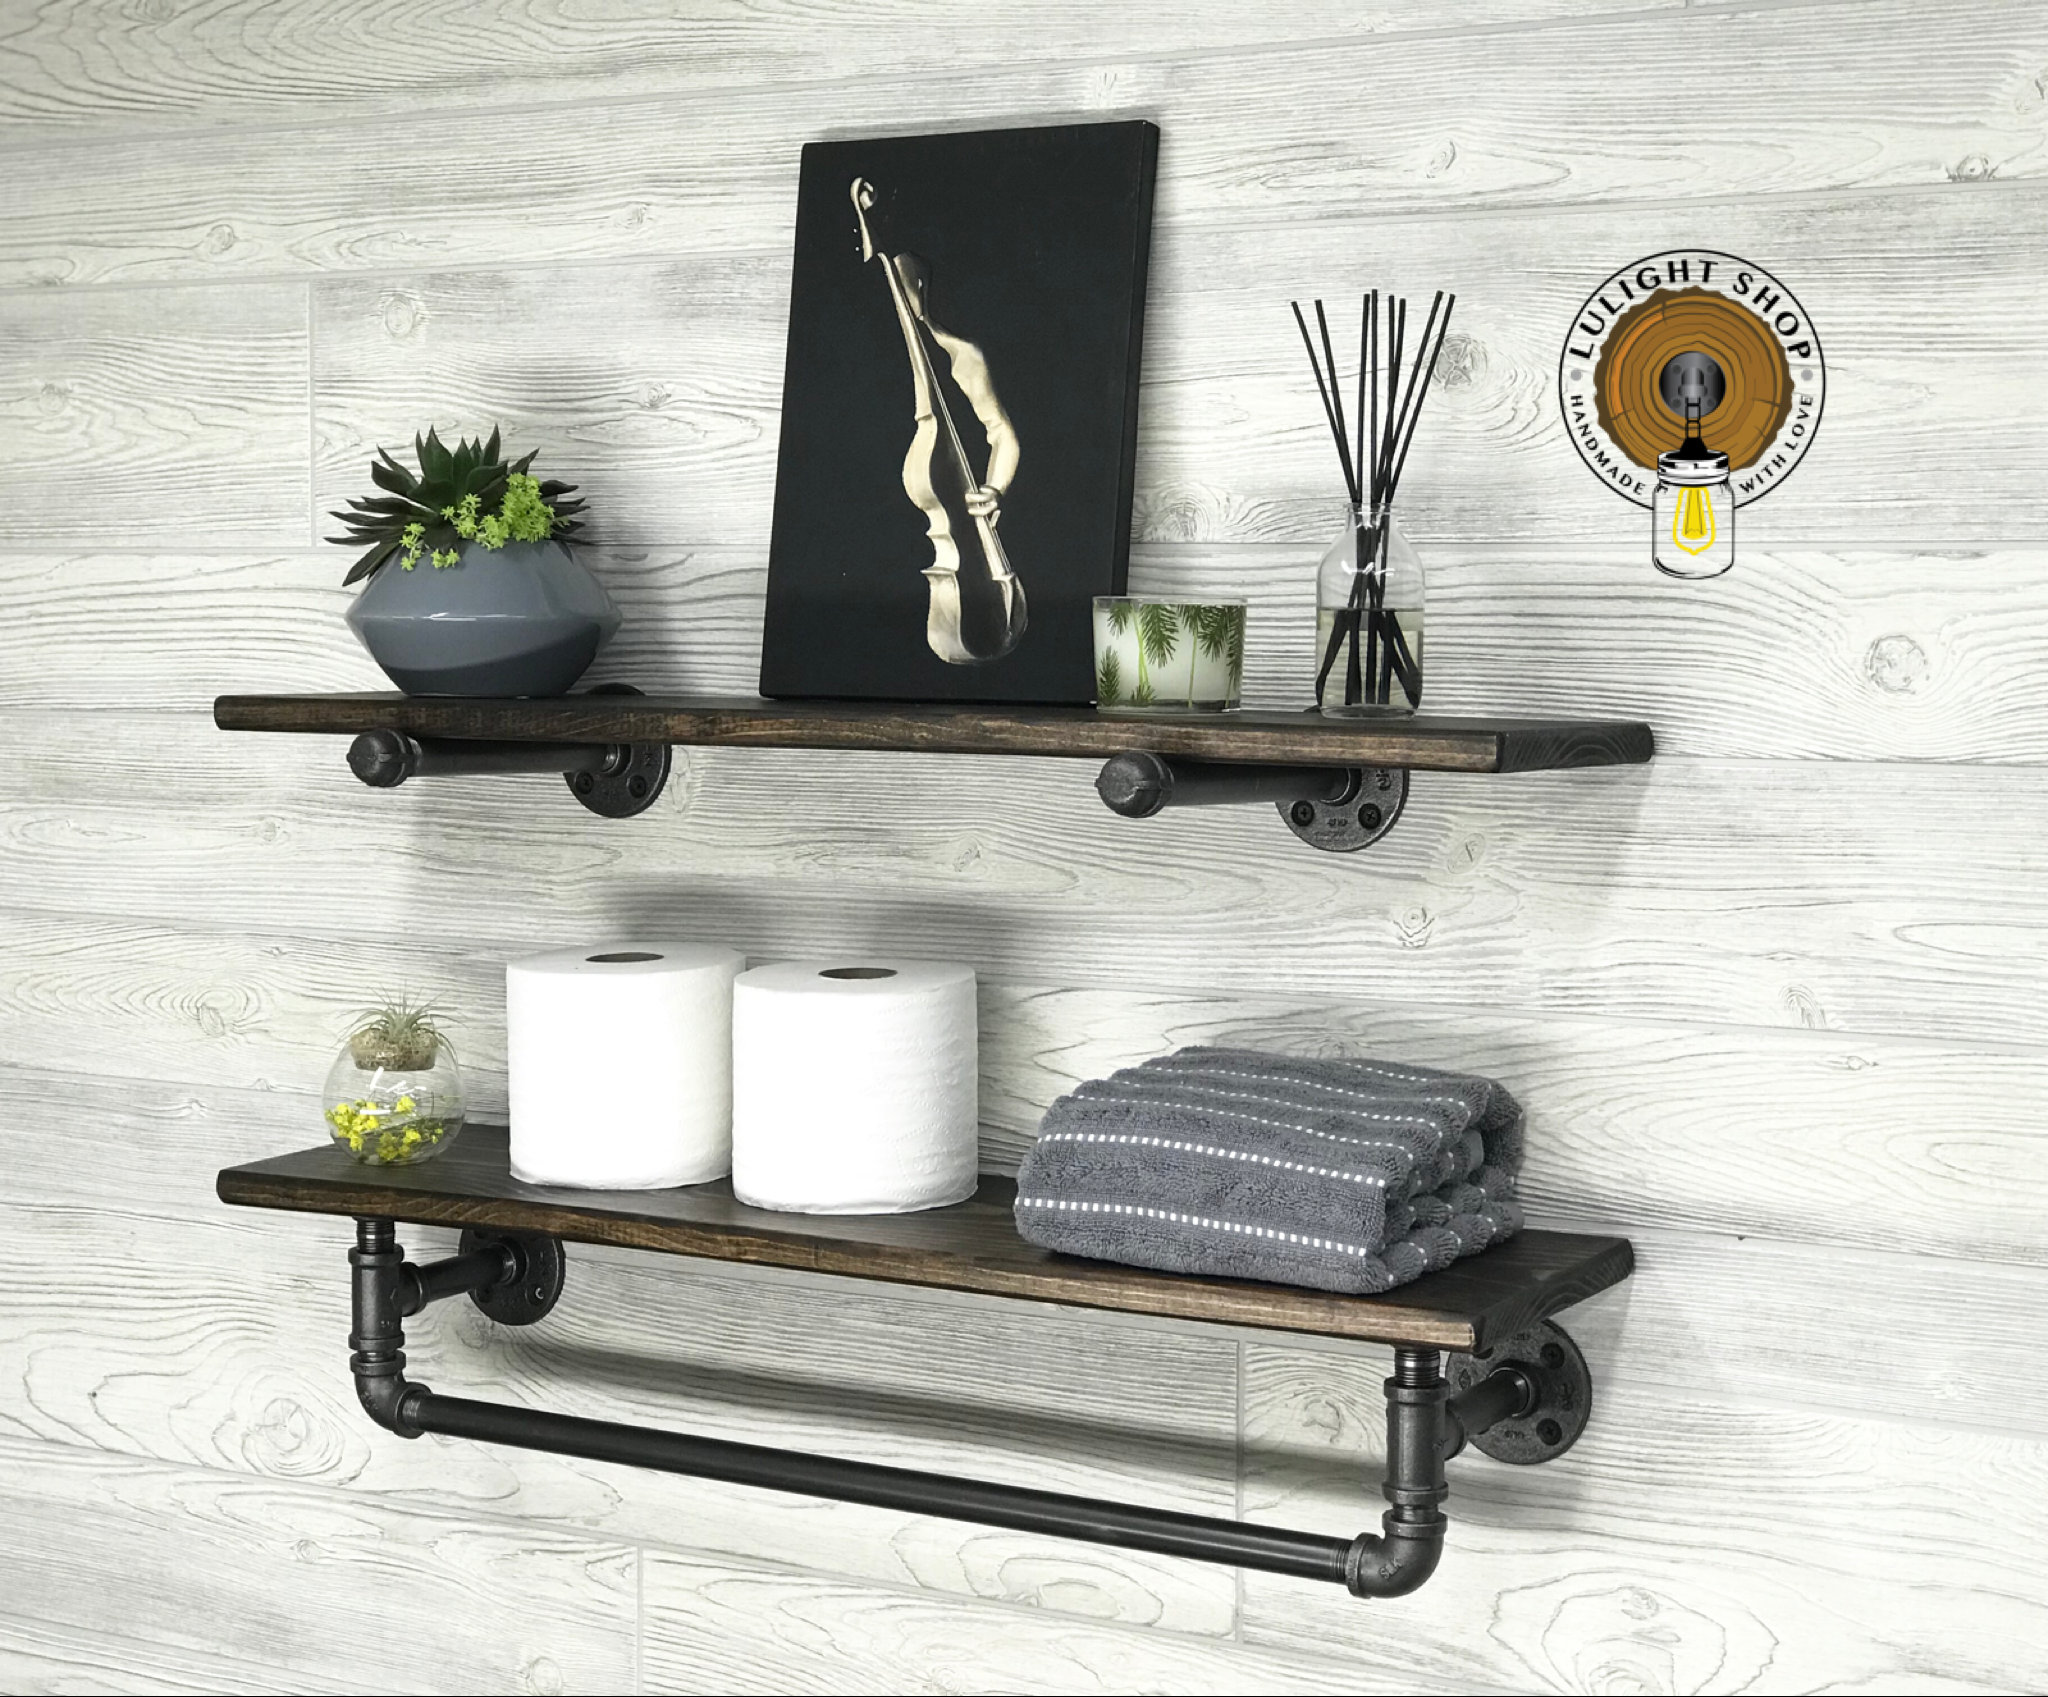 deep towel bar with shelf and extra floating etsy fullxfull plastic garage racking fireplace ledge diy work shelves dvd box corner wall unit ikea wooden shoe bench prepac sonoma